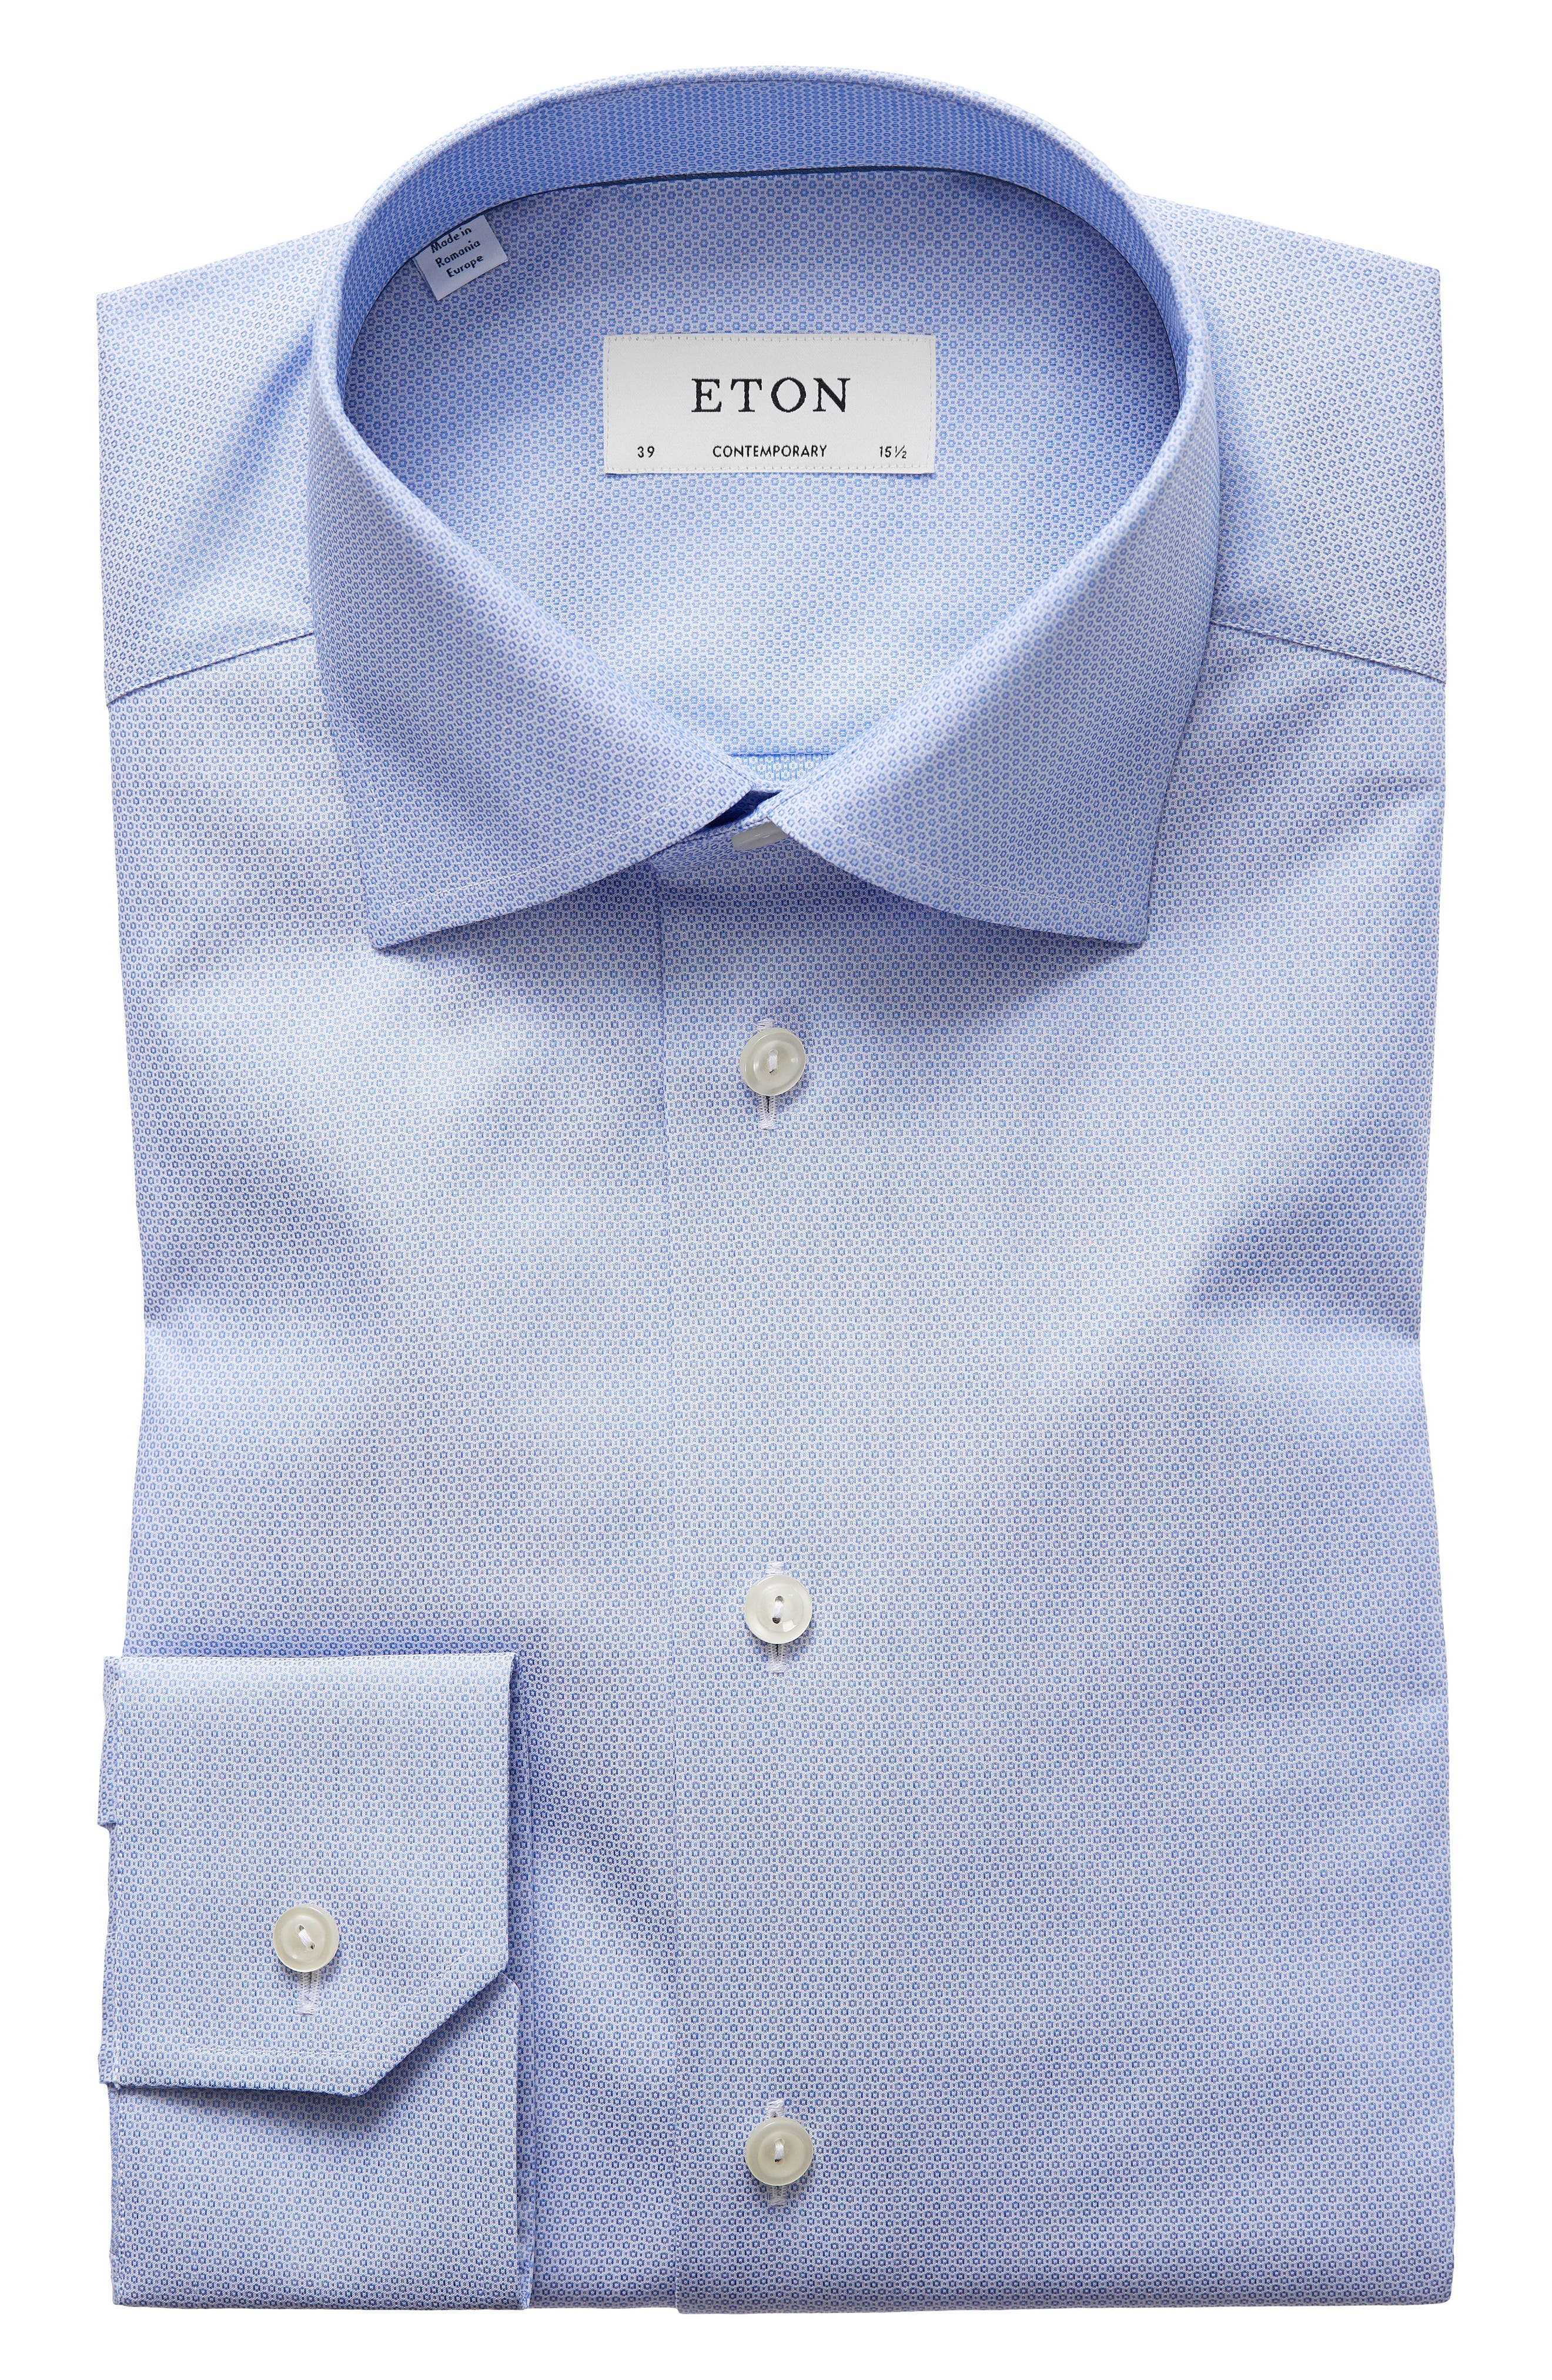 Main Image - Eton Contemporary Fit Textured Solid Dress Shirt